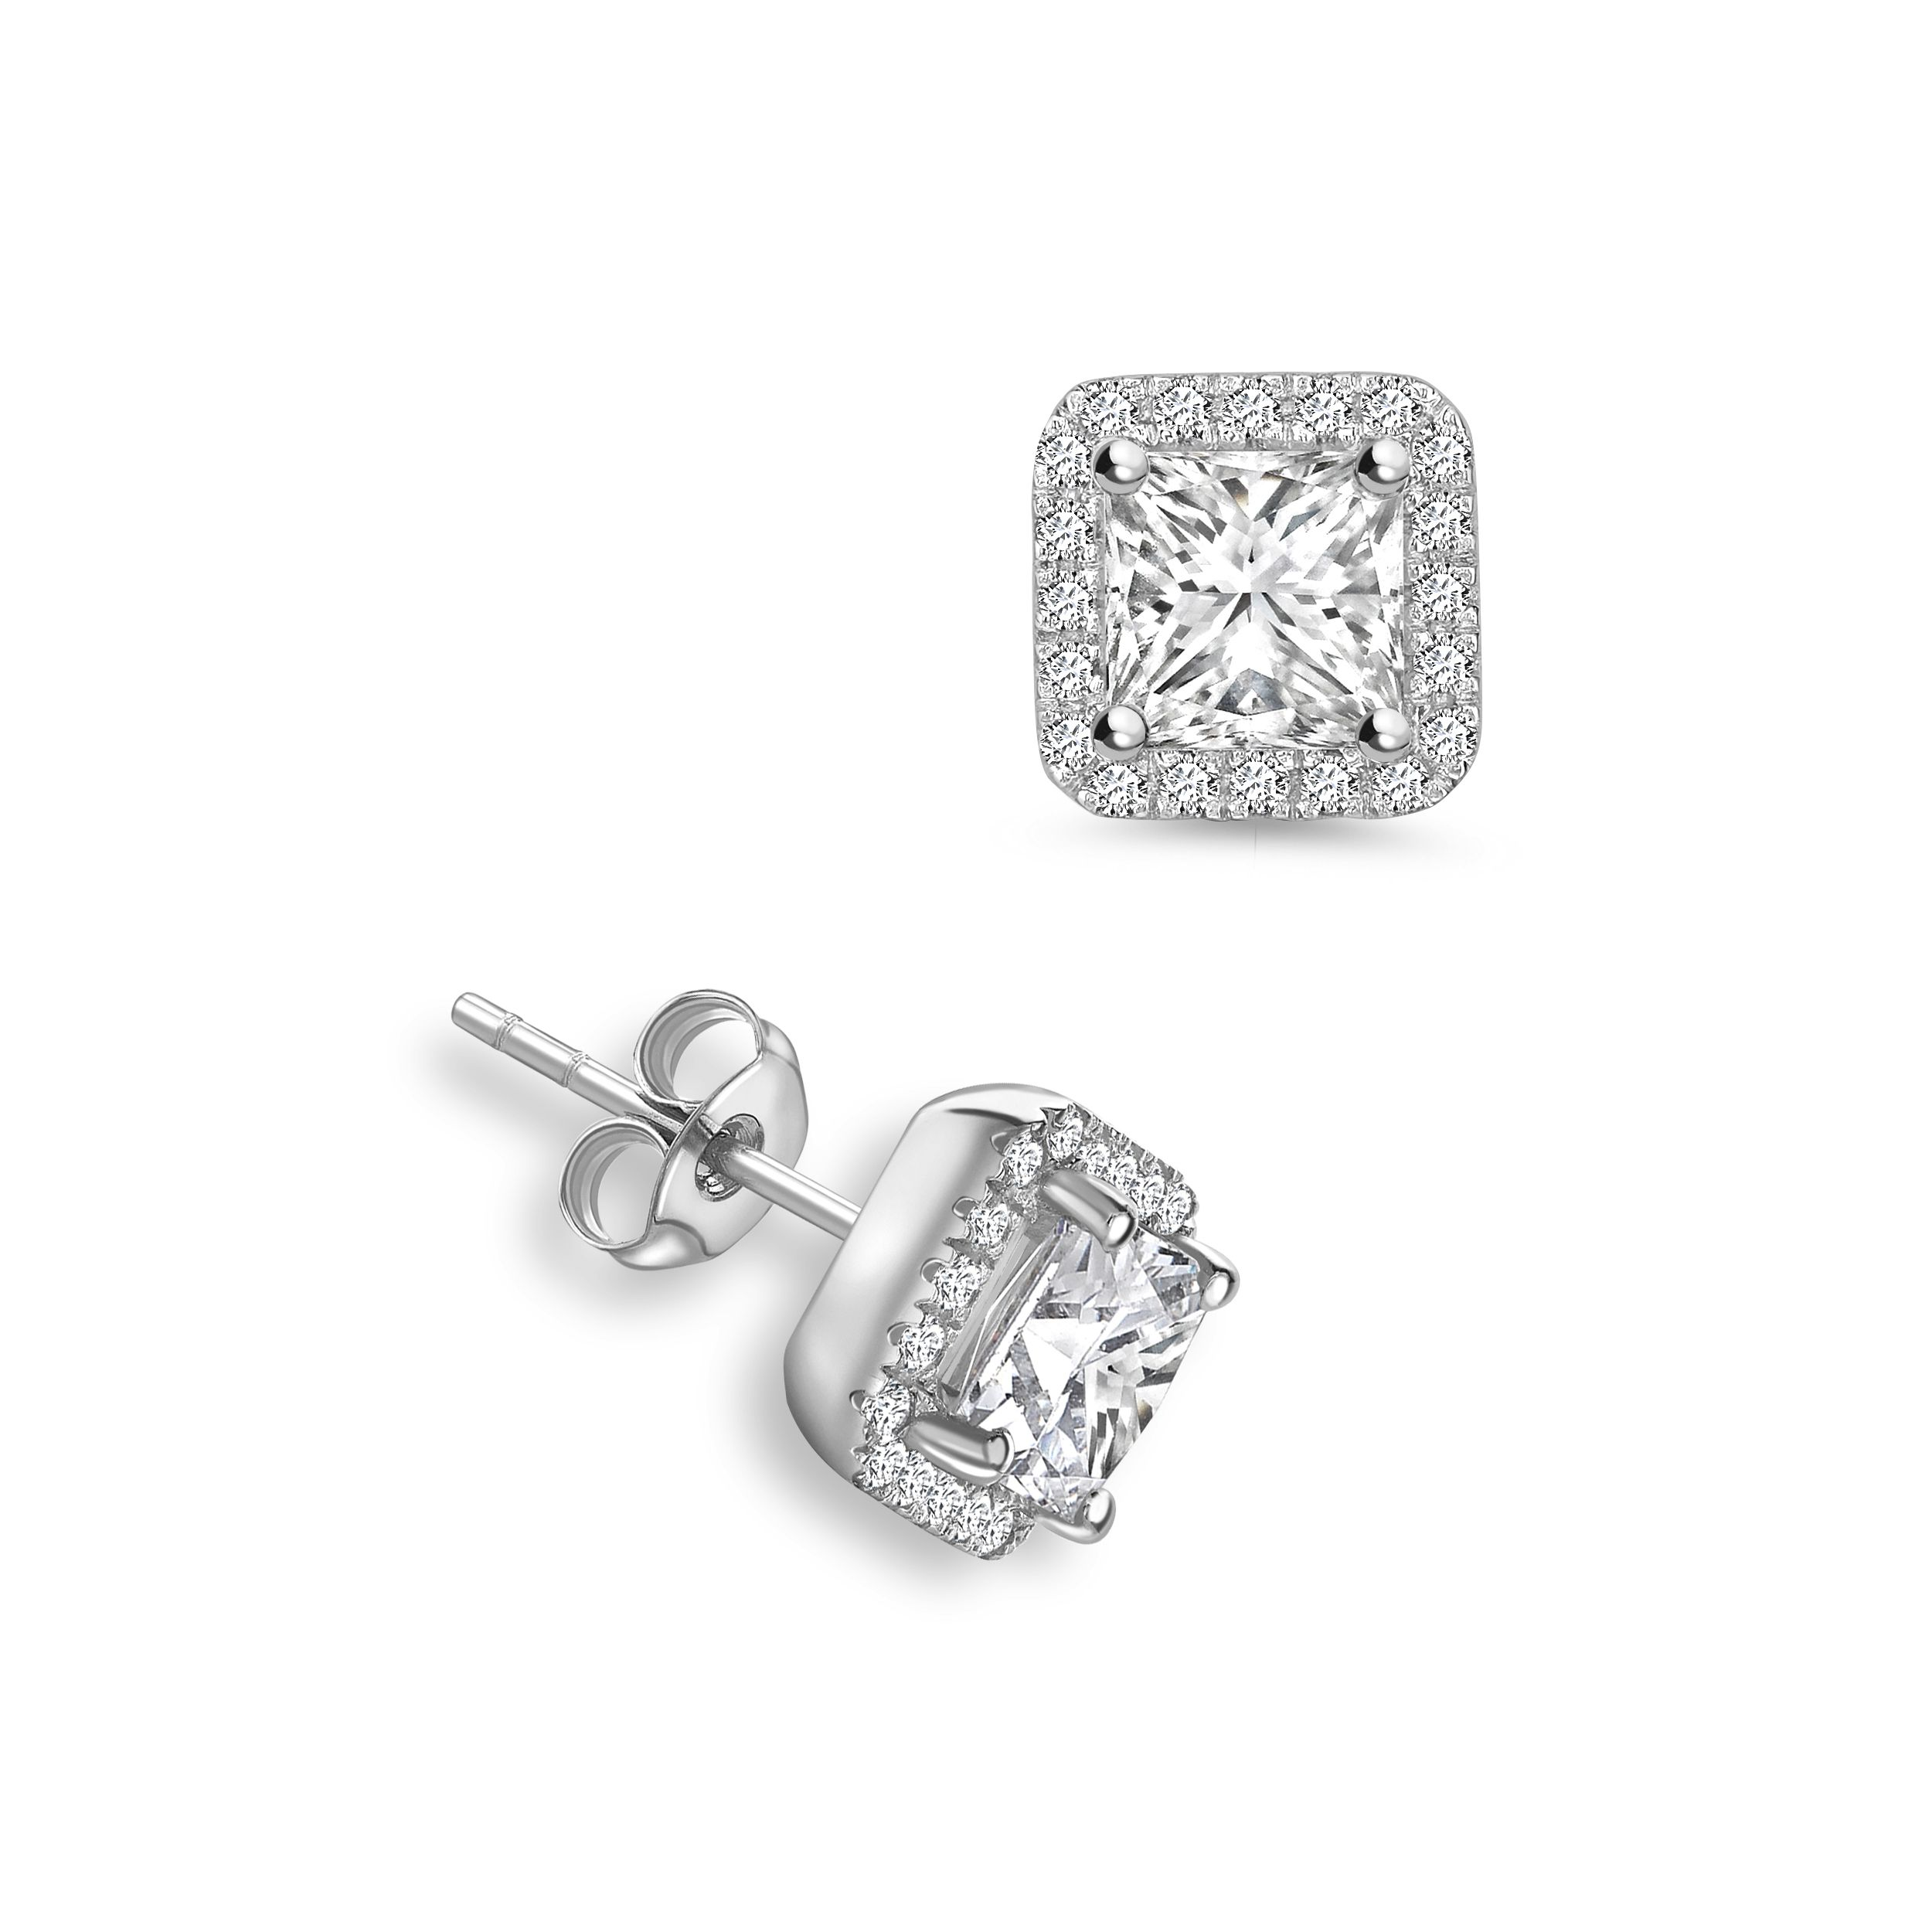 Princess Shape Square Diamond Halo Diamond Earrings Available in Rose, Yellow, White Gold and Platinum